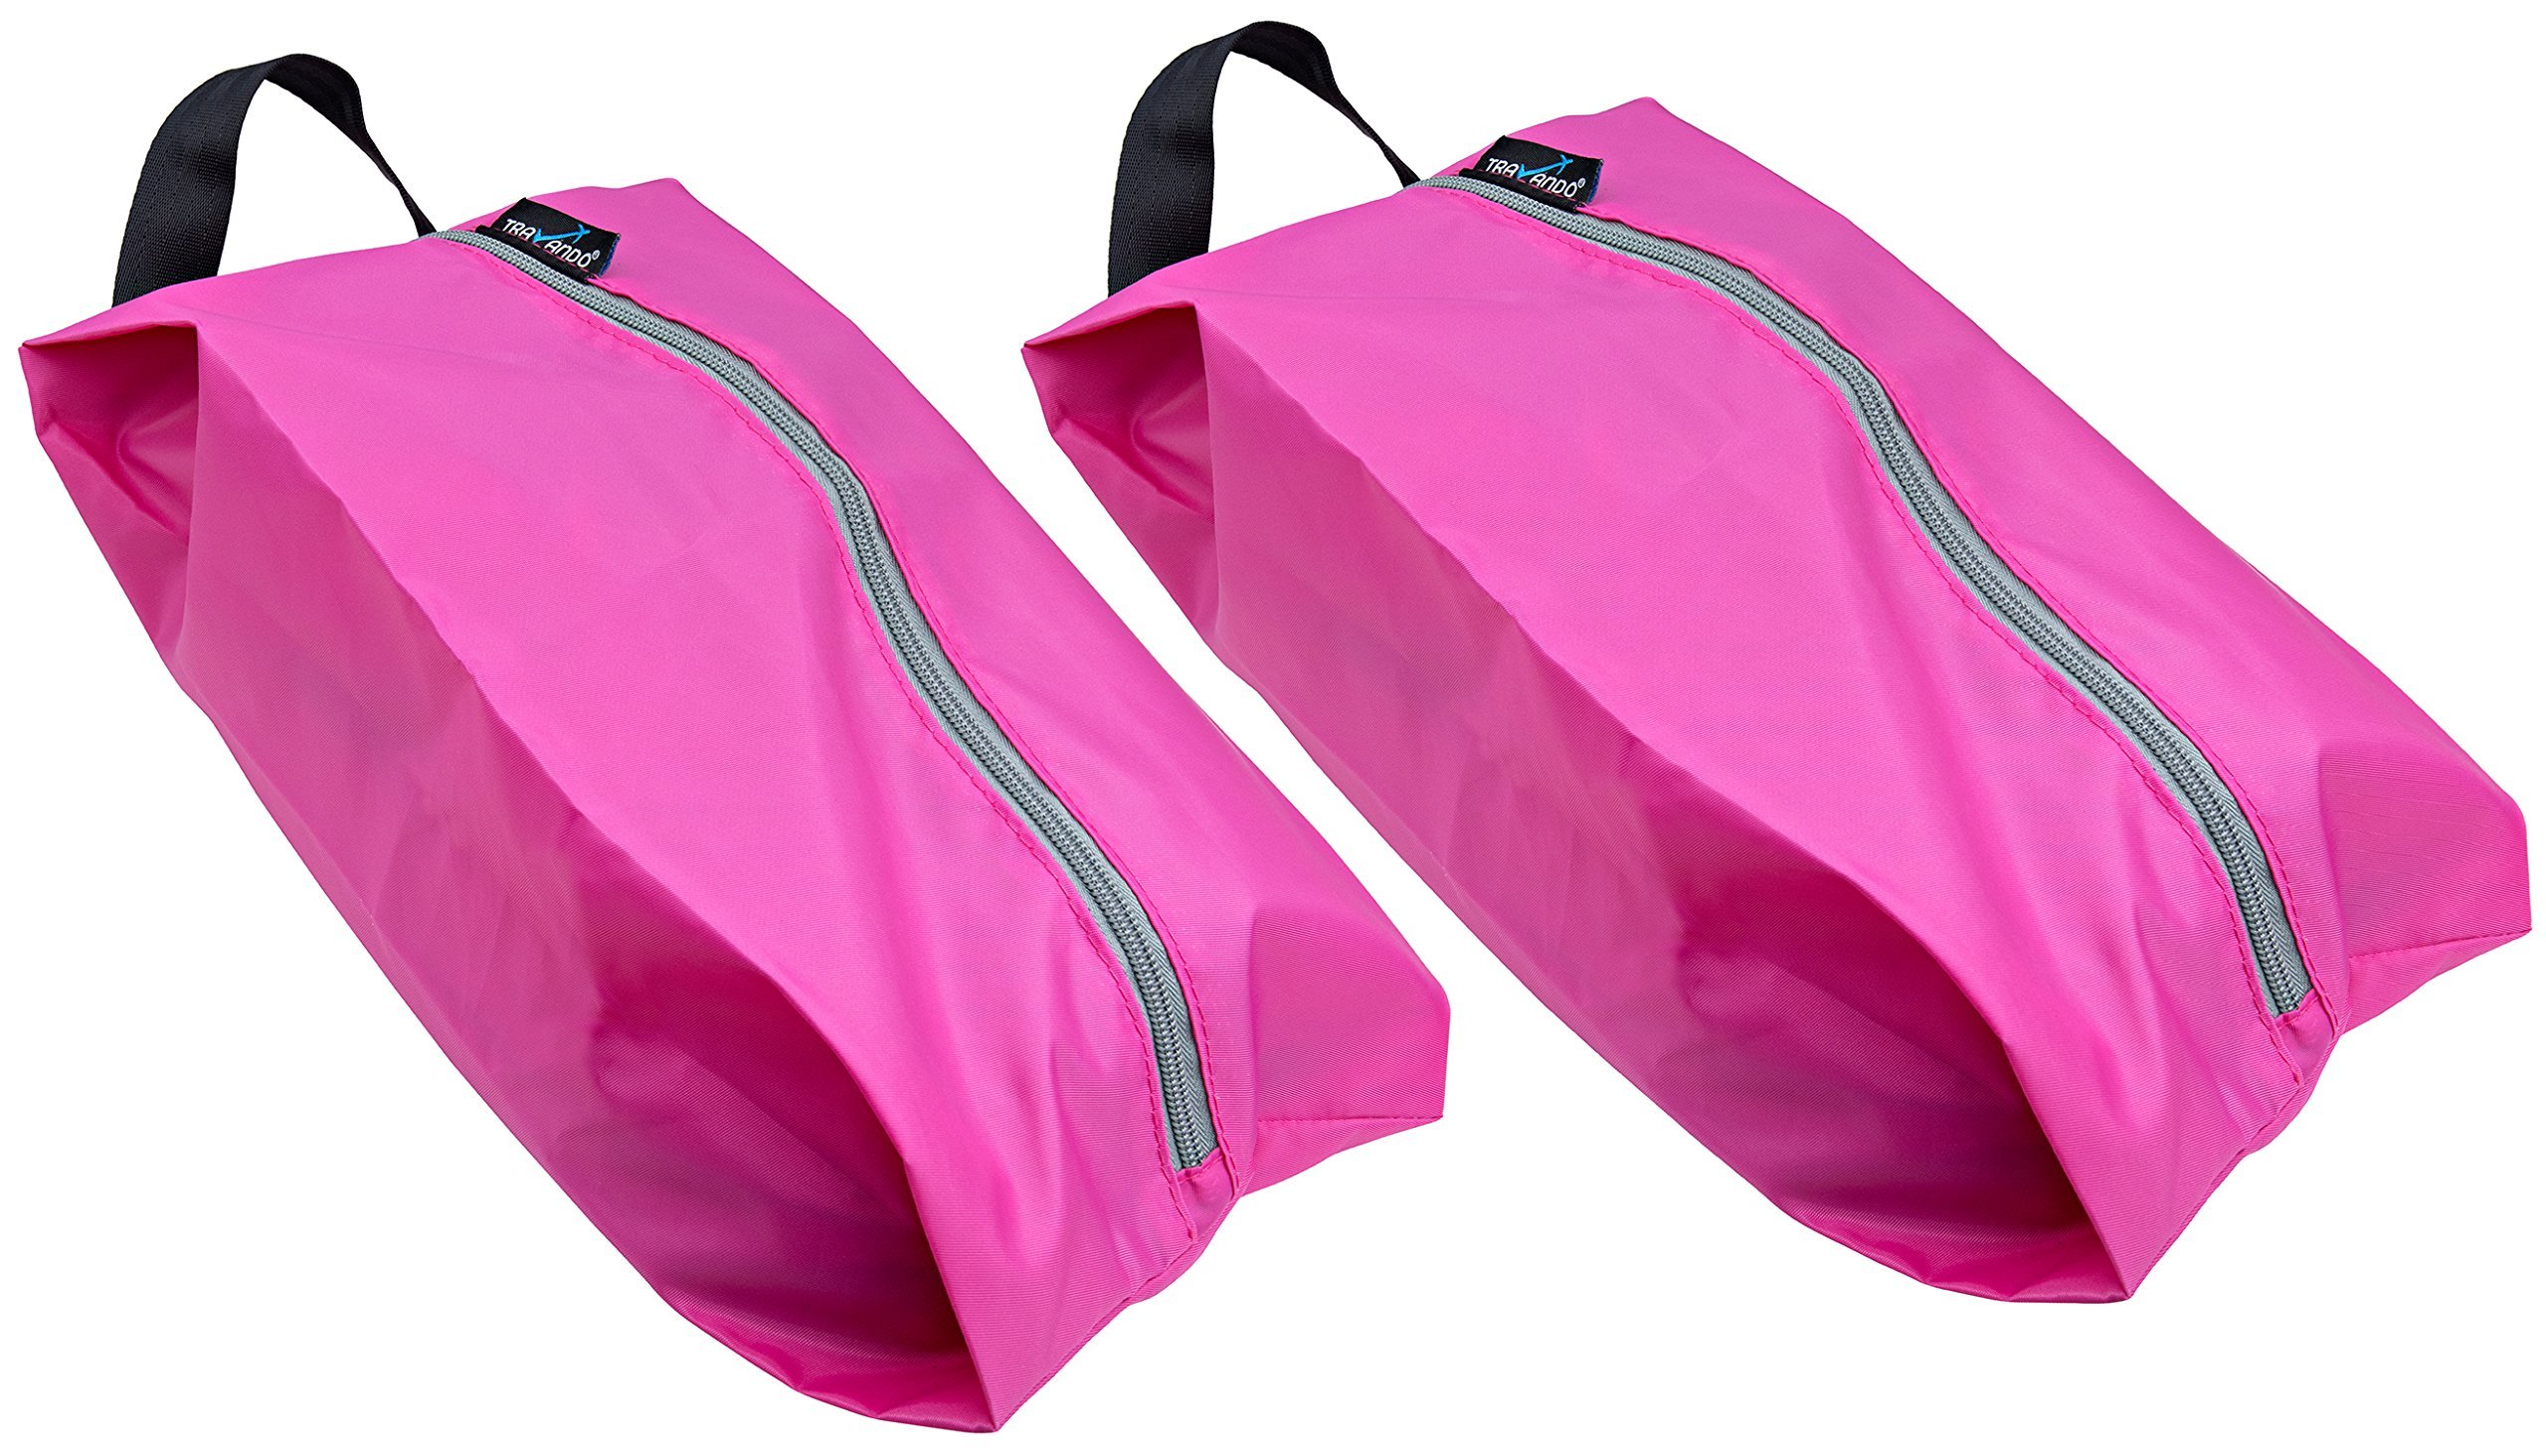 TRAVANDO Shoe Bag Set of 2 | Travel Accessories Essentials Travel Organizers Packing Cubes Suitcase Luggage Bags for Shoes